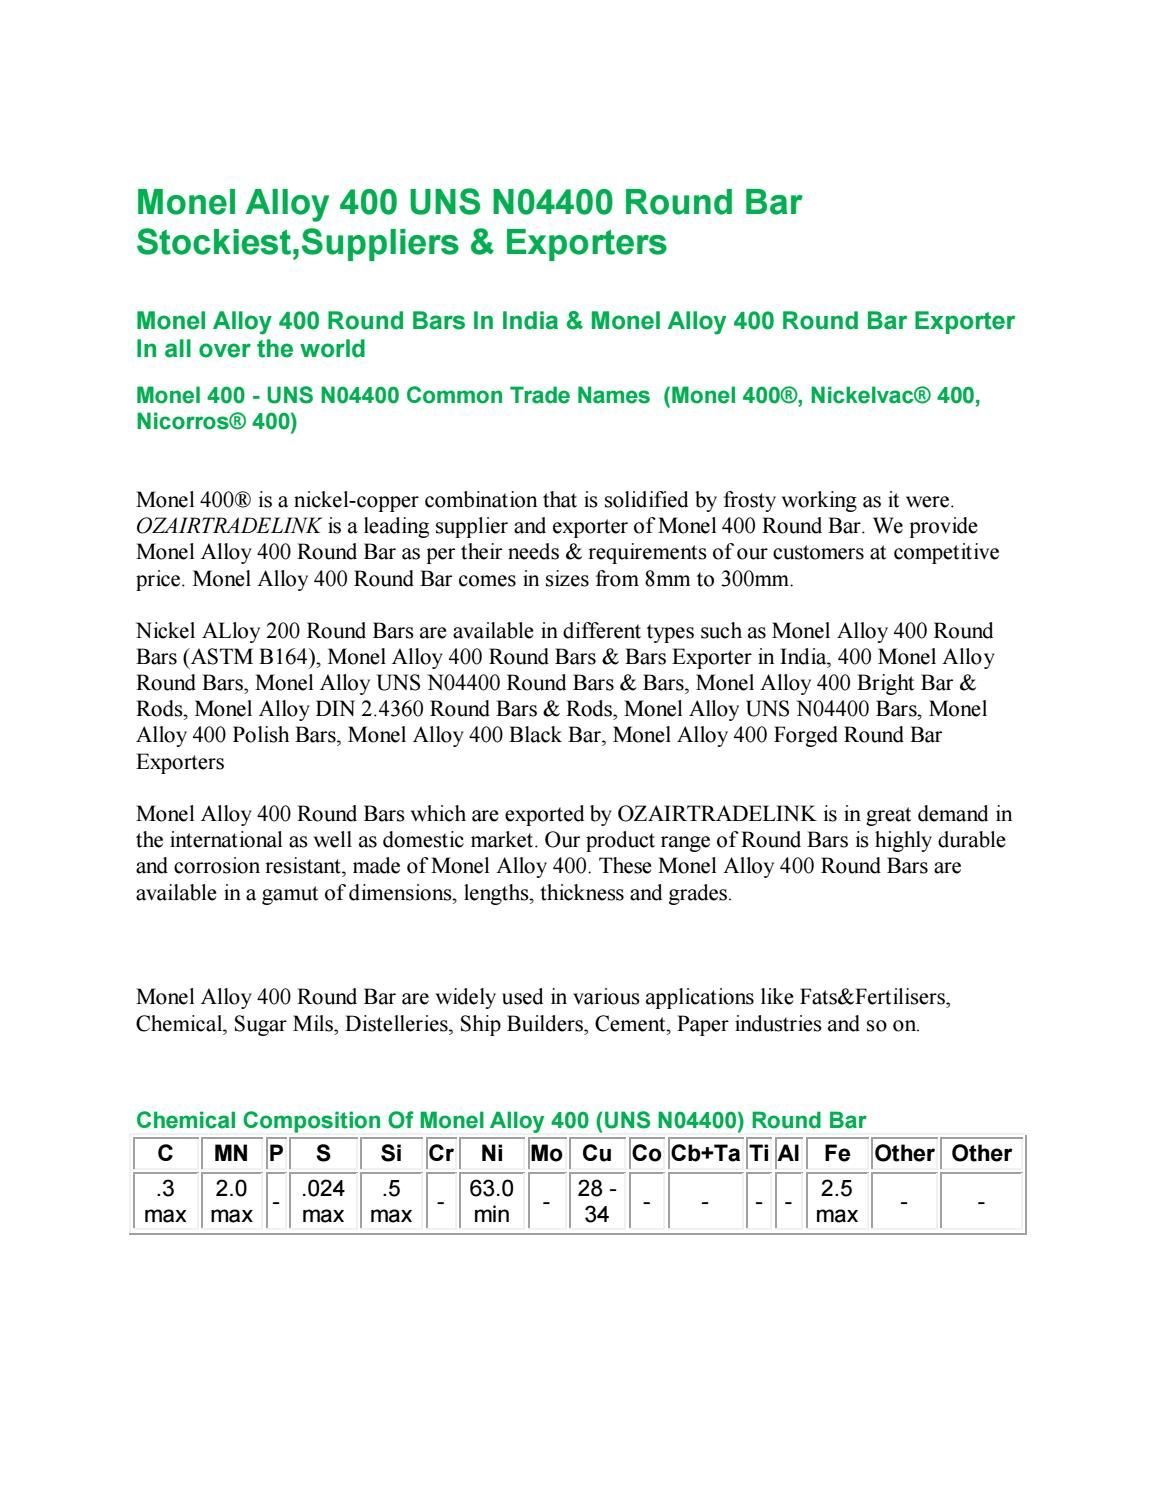 Monel Alloy 400 UNS N04400 Round Bar Stockiest,Suppliers & Exporters ...